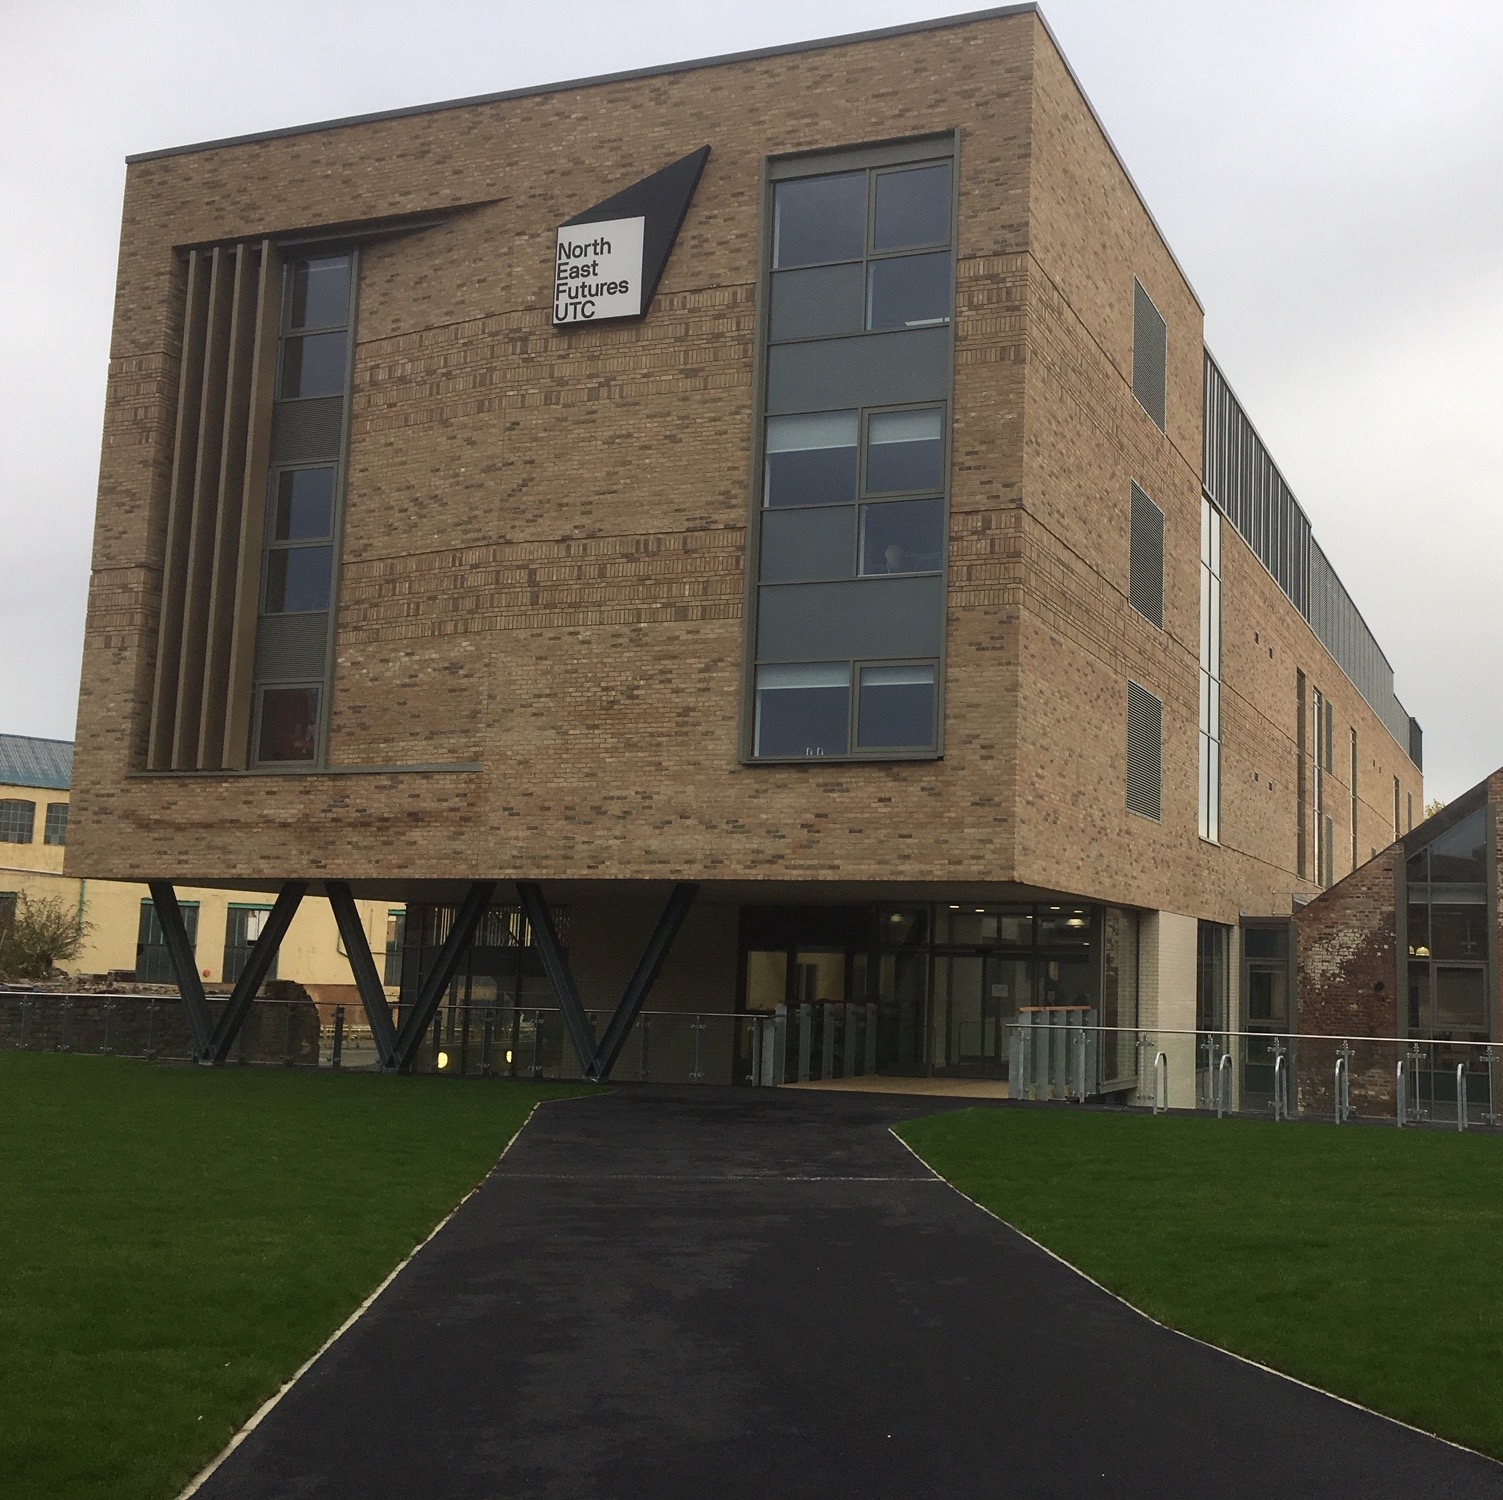 University Technical College for the North East Futures Trust